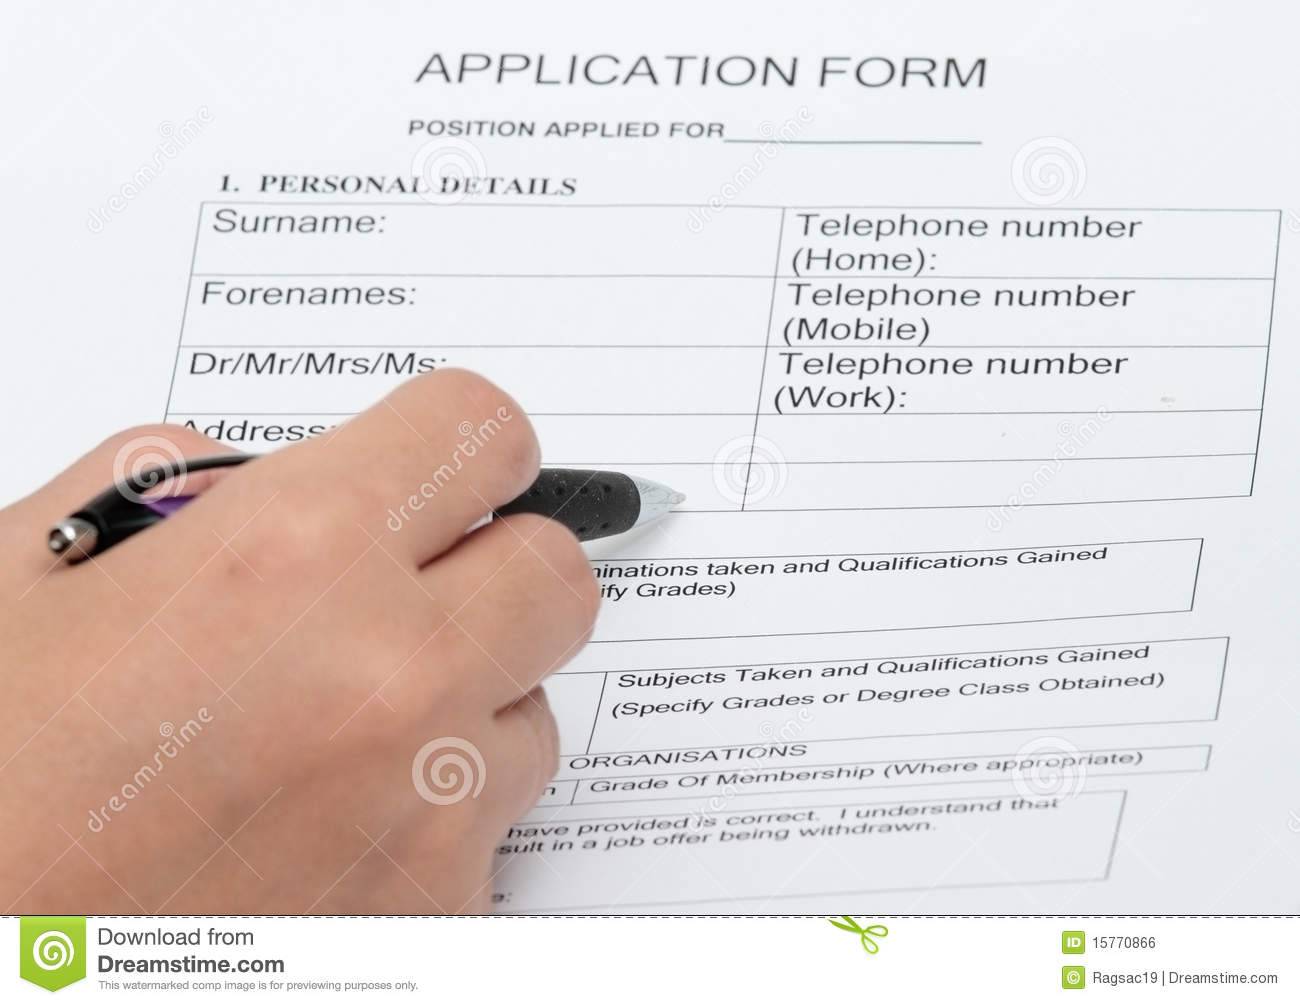 Application And Personal Details Form Royalty Free Stock Image - Image